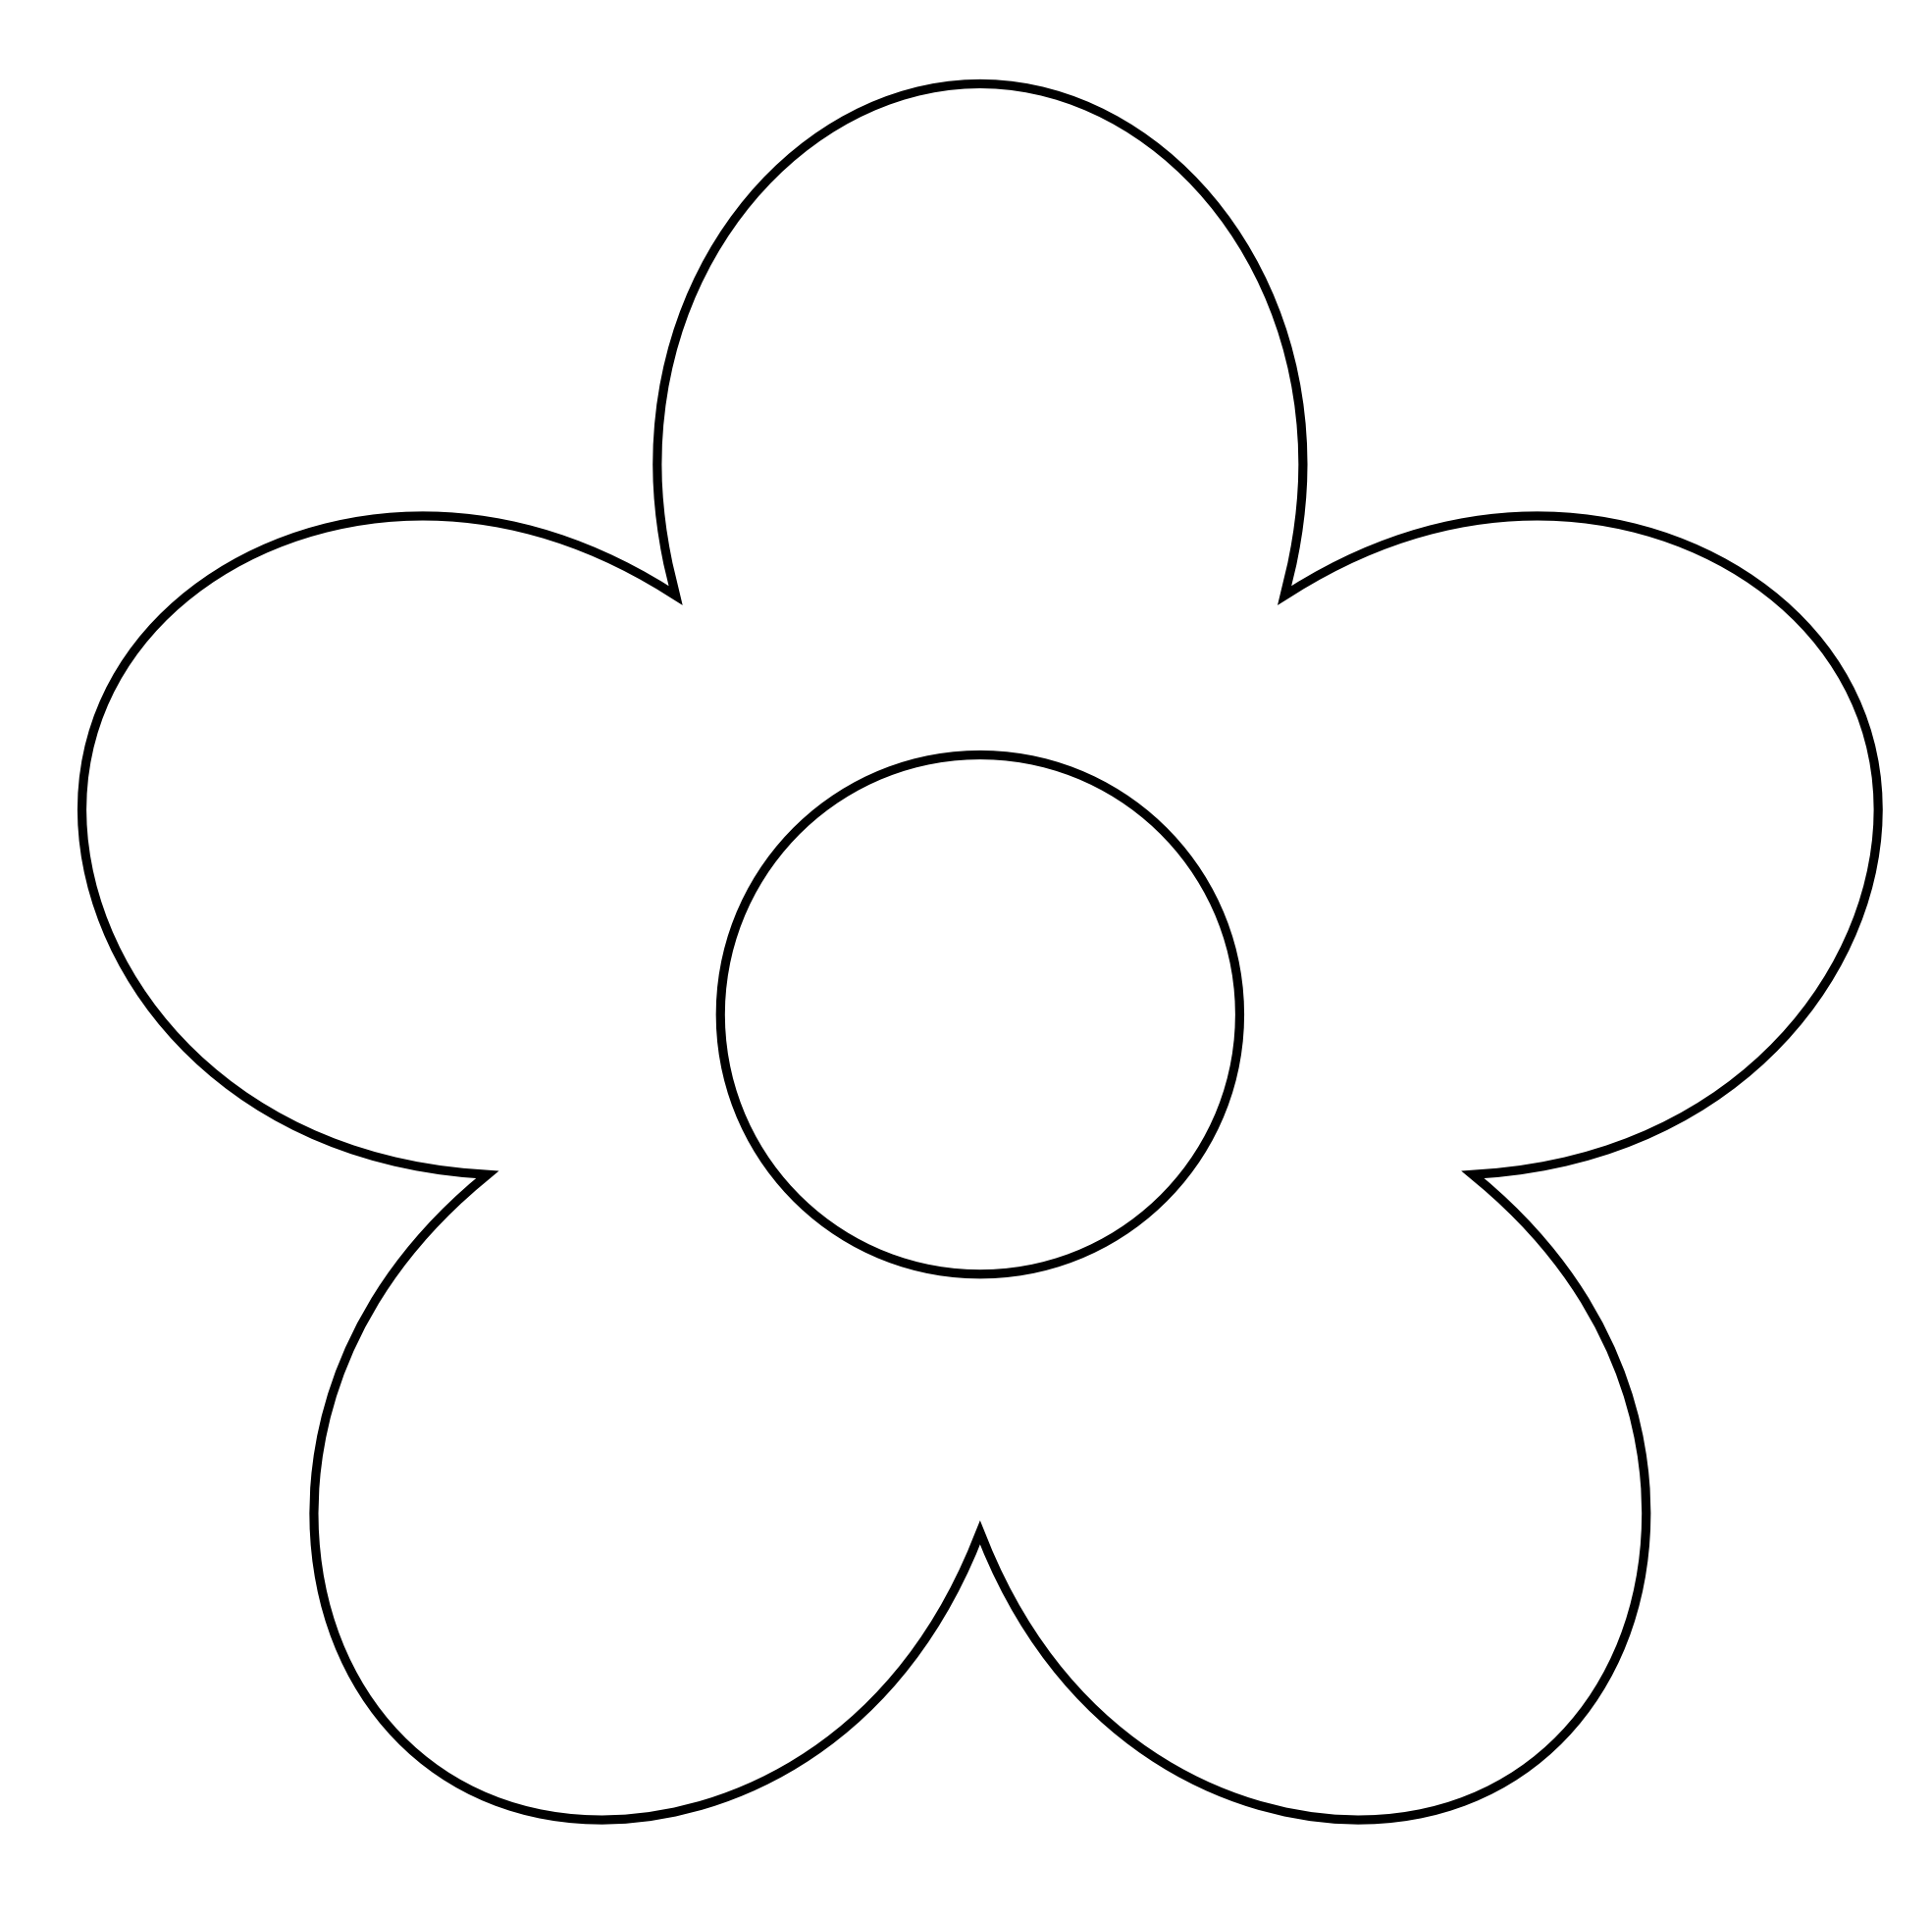 White Flower clipart #12, Download drawings